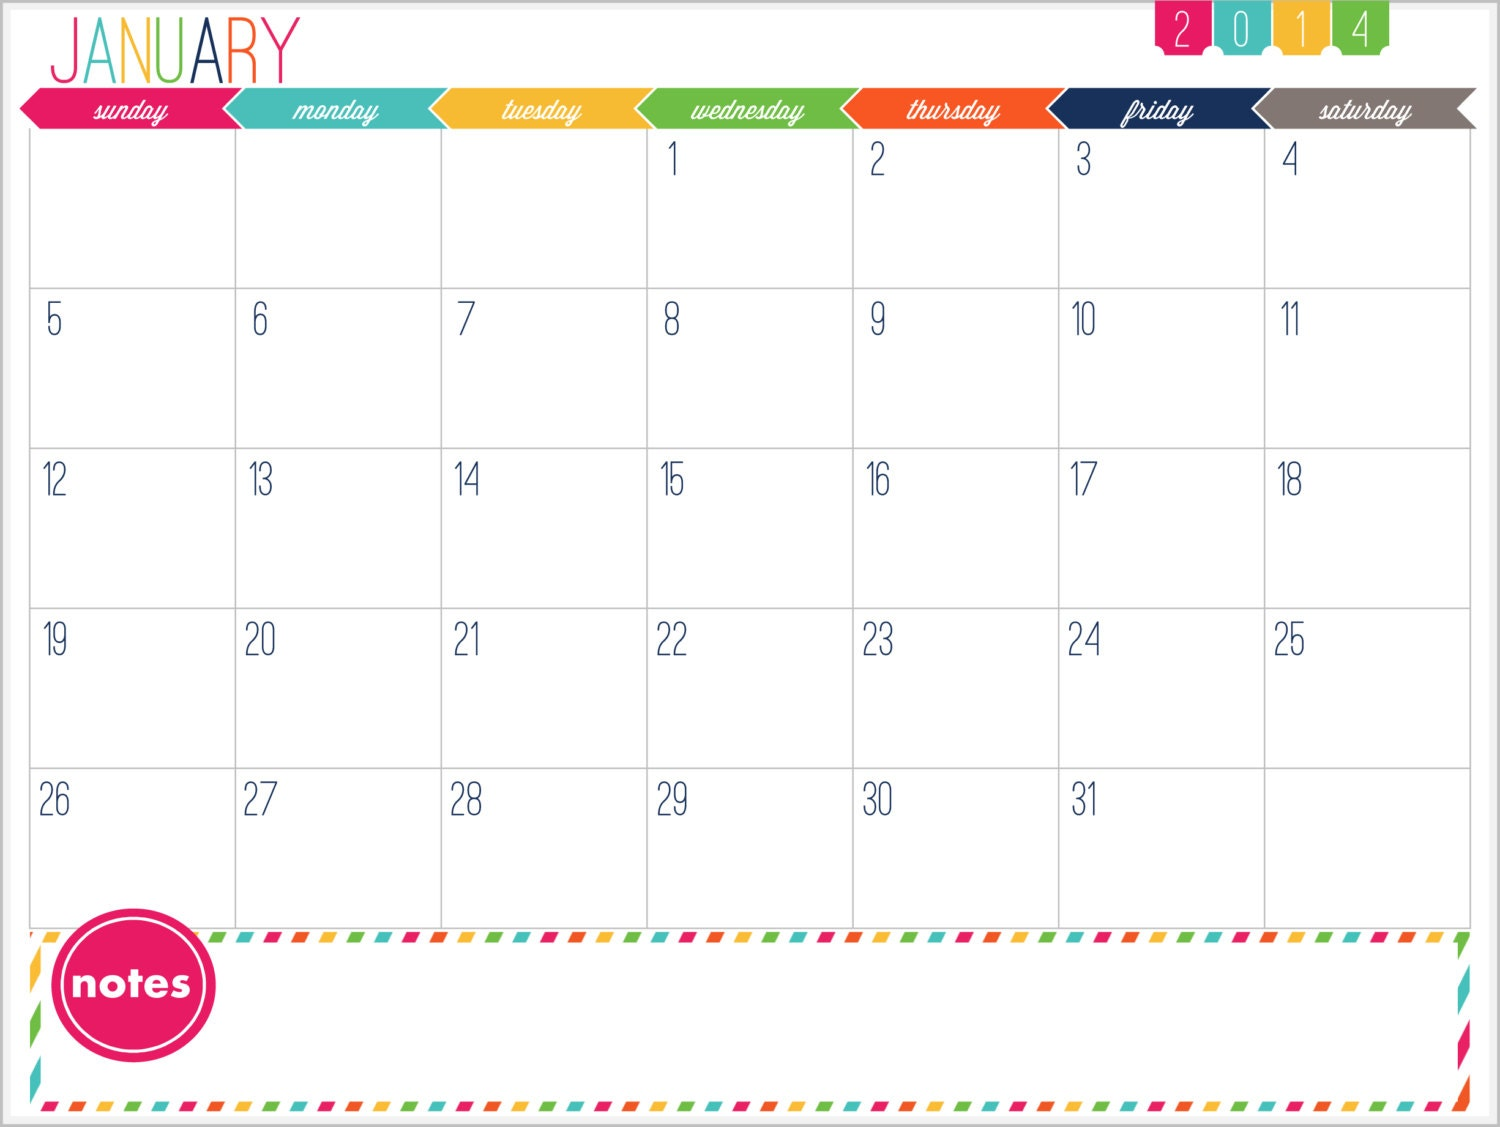 2 month calendar template 2014 - 12 month calendar printable prefilled for 2014 instant